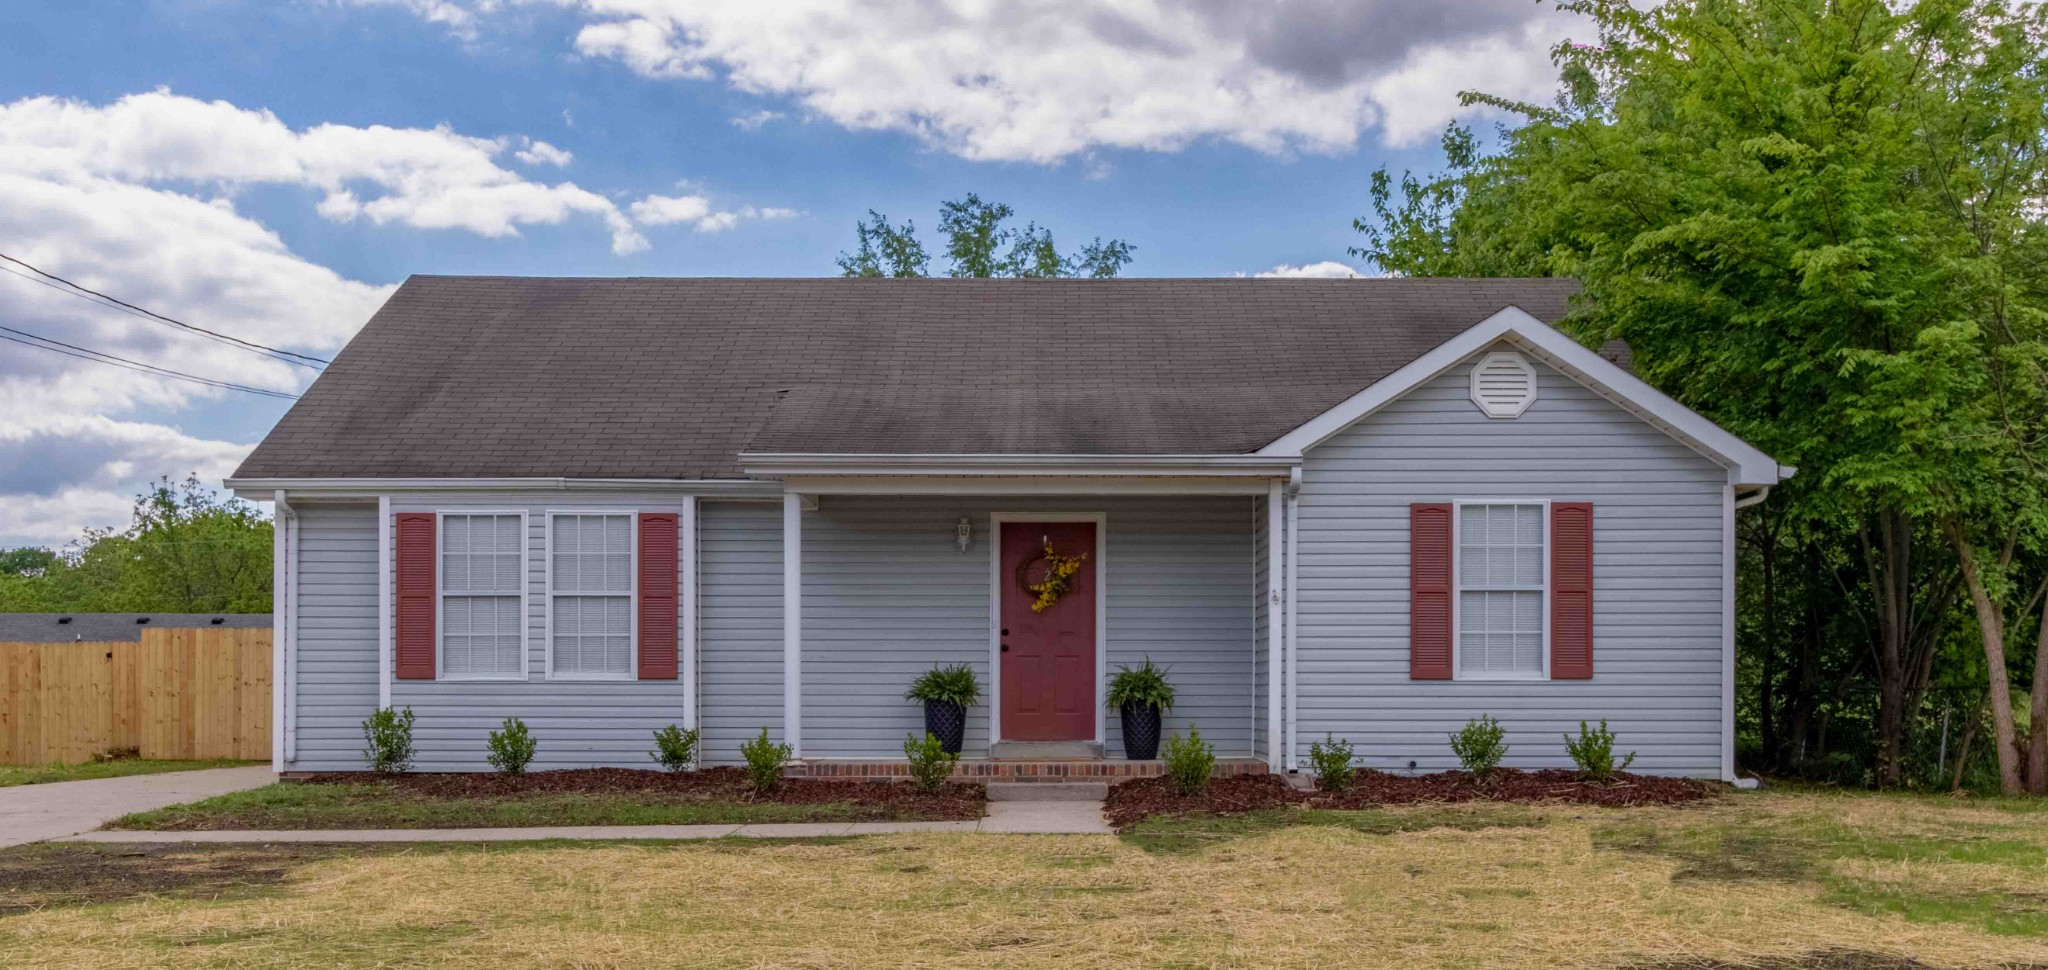 230 Jim Thorpe Dr Property Photo - Clarksville, TN real estate listing